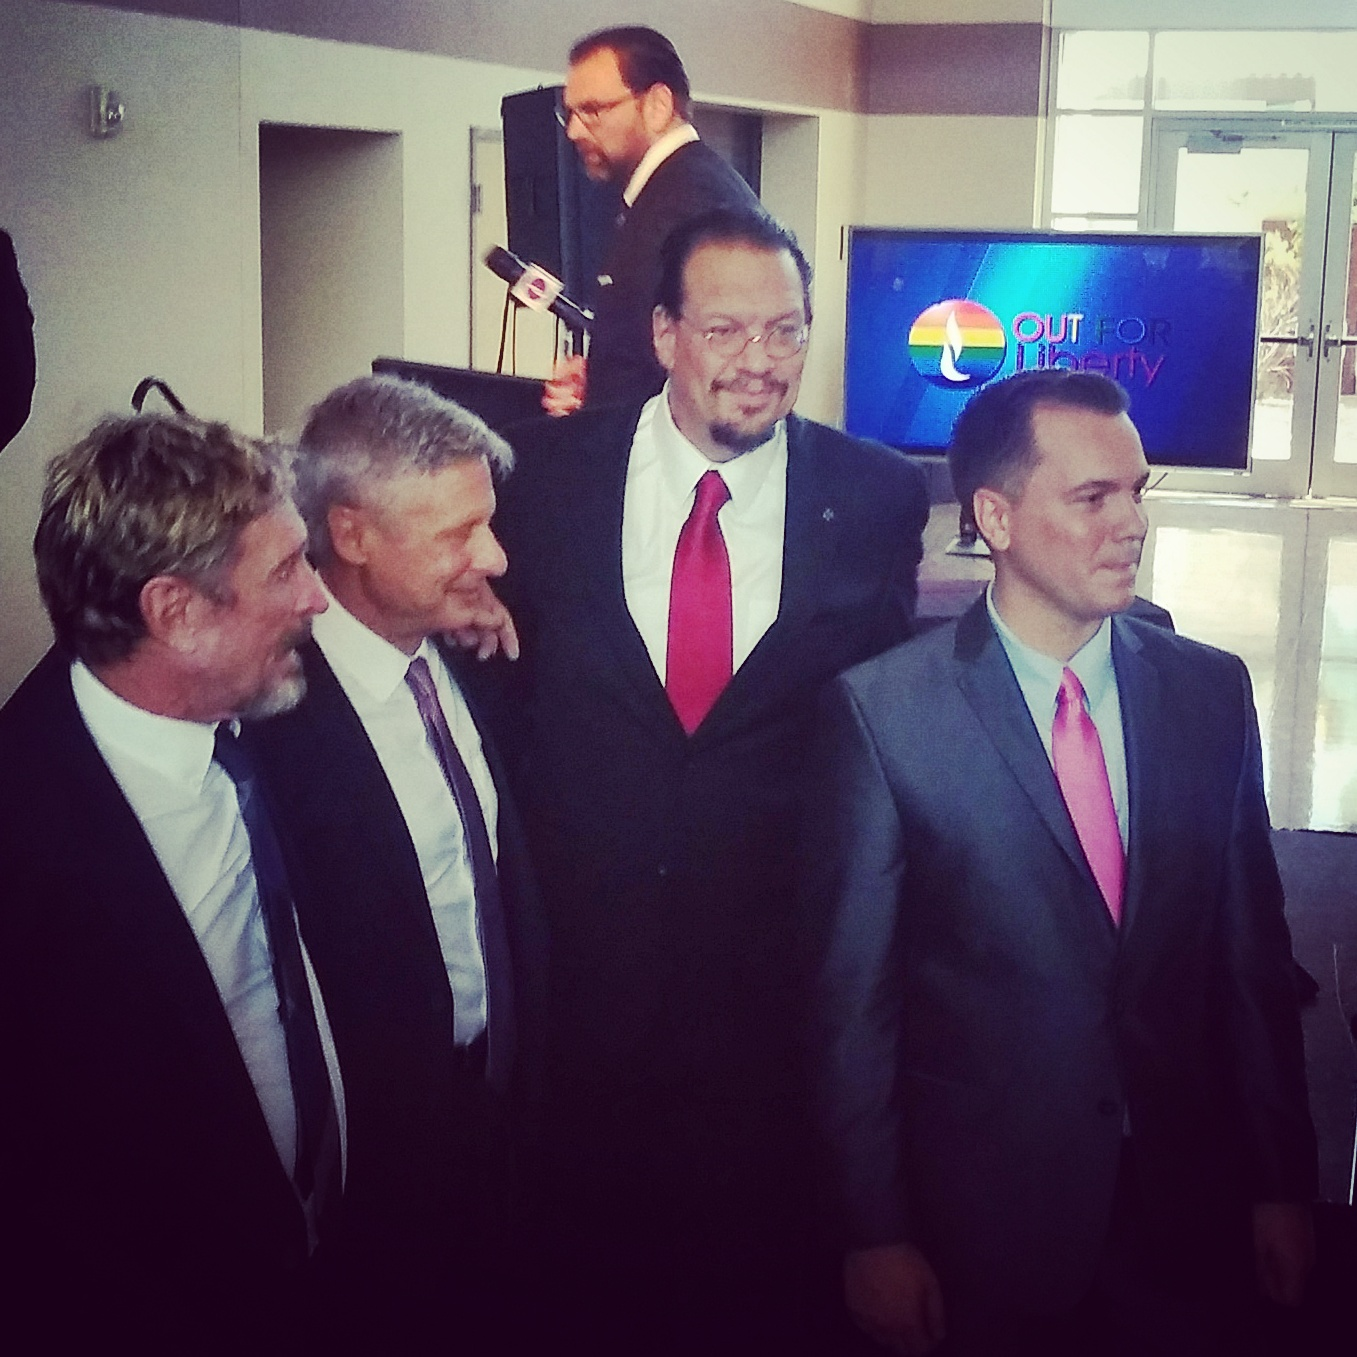 Penn Jillette with the Libertarian candidates. Photo by Jason Nellis.